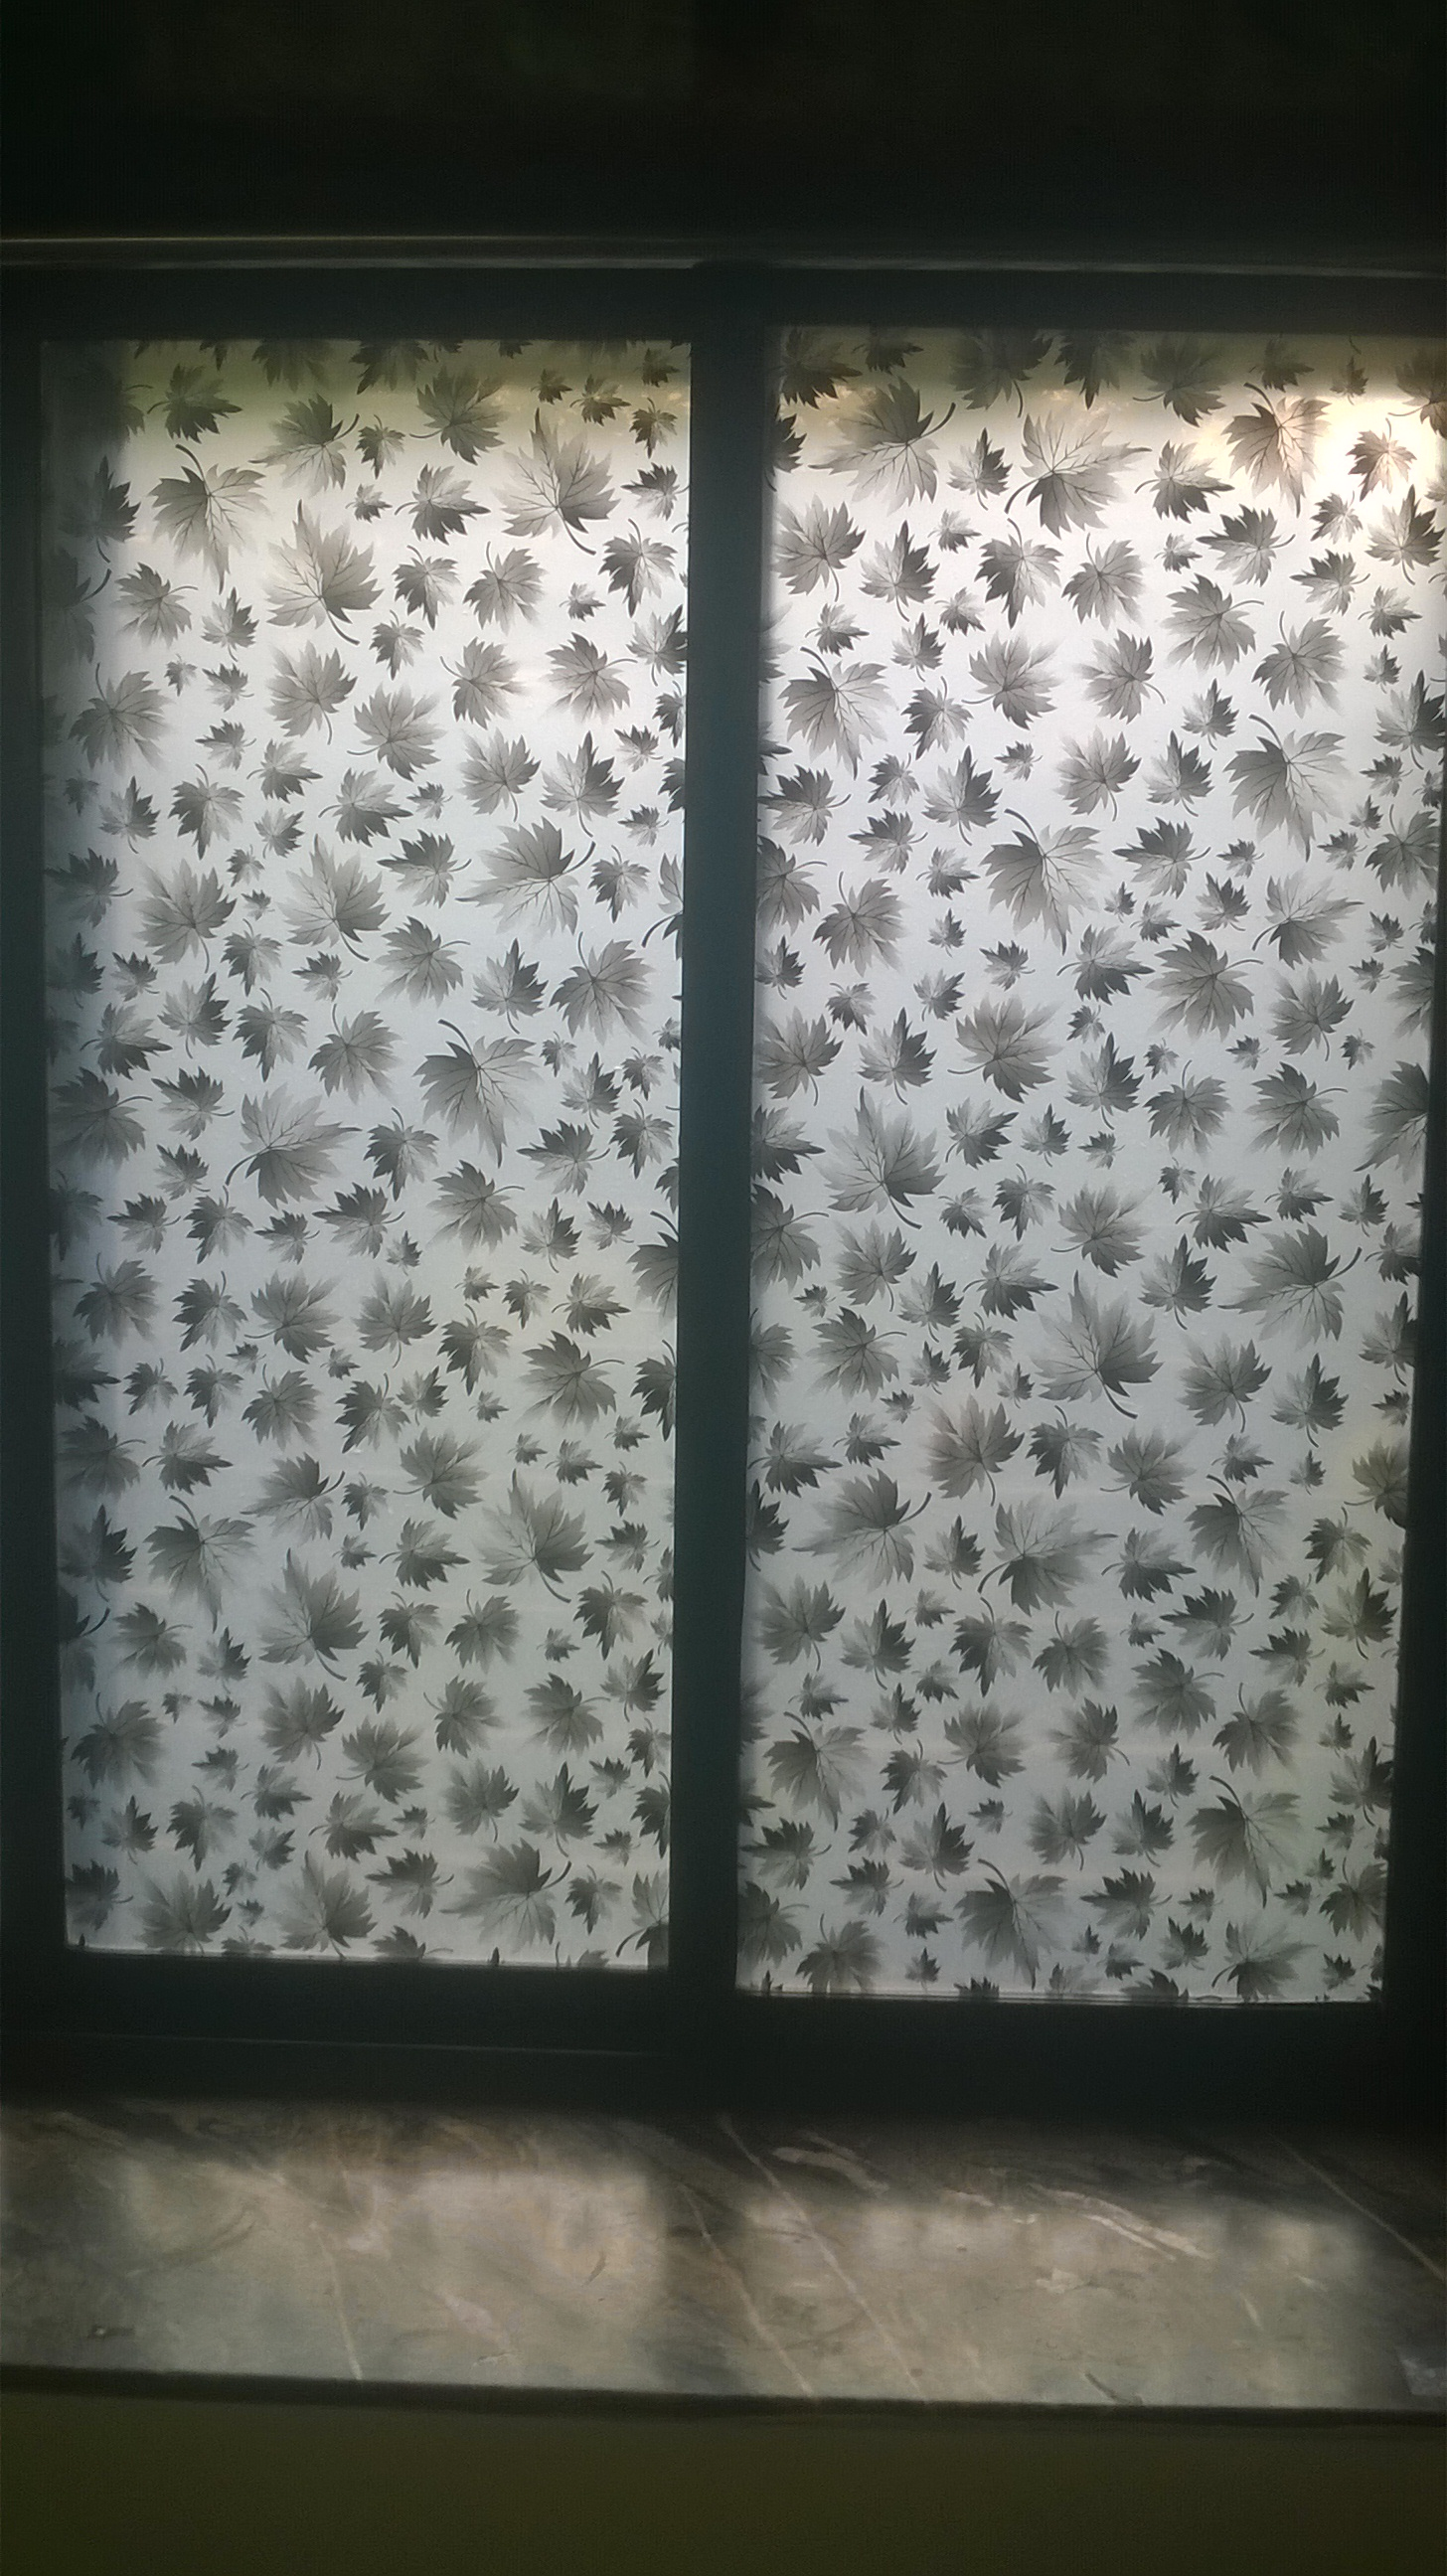 Frosted Glass Film Decorative Window Kaca Oneway Premium 3d Pebble Textured Filmpriced Per Ft